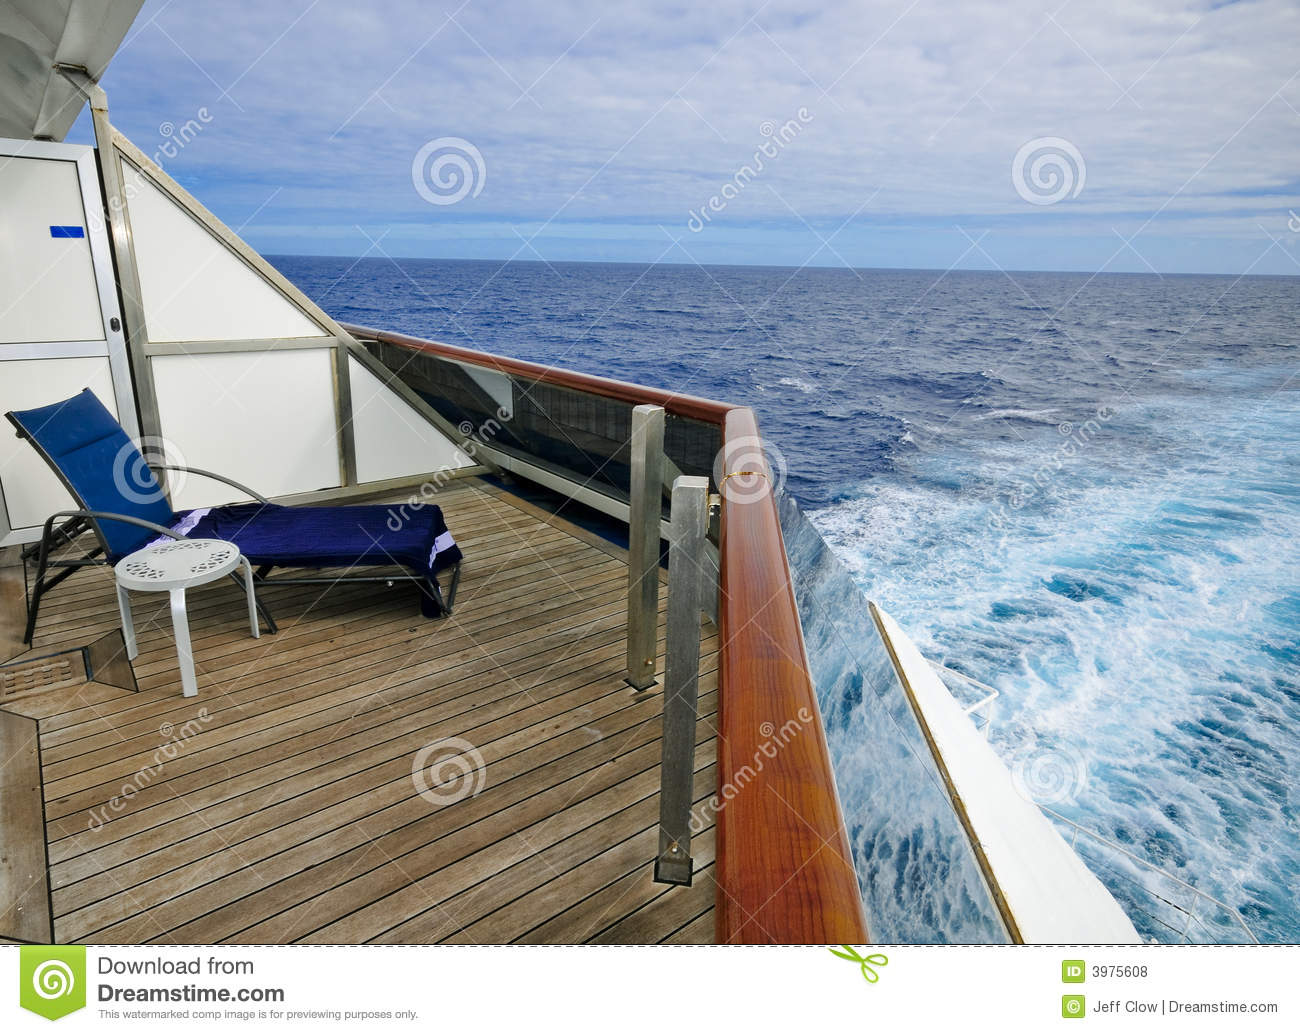 View from the balcony royalty free stock photos image for Cruise ship balcony view